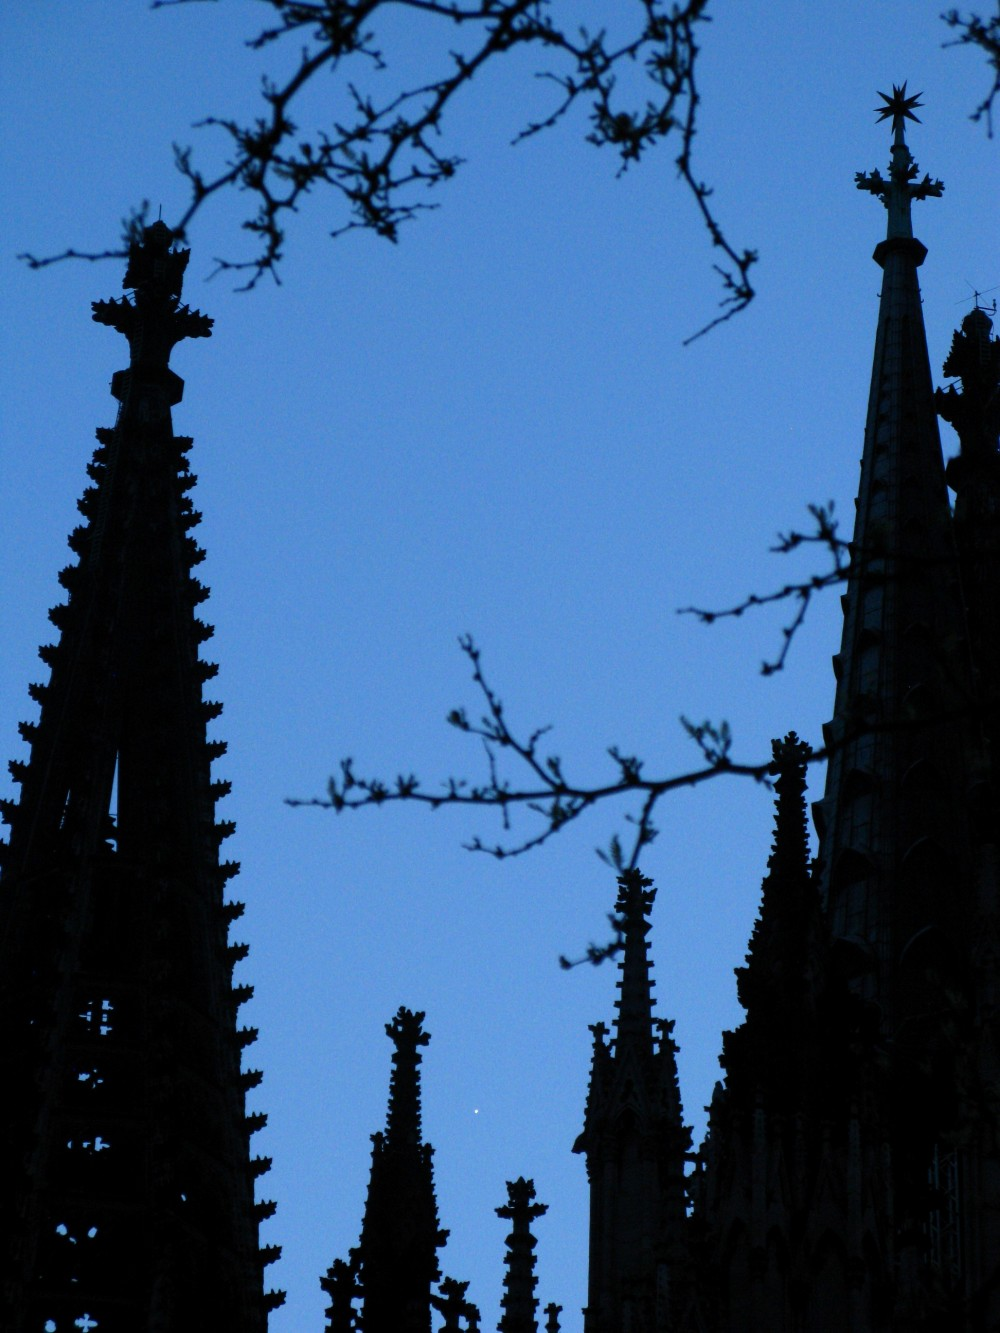 The evening star framed by some spires